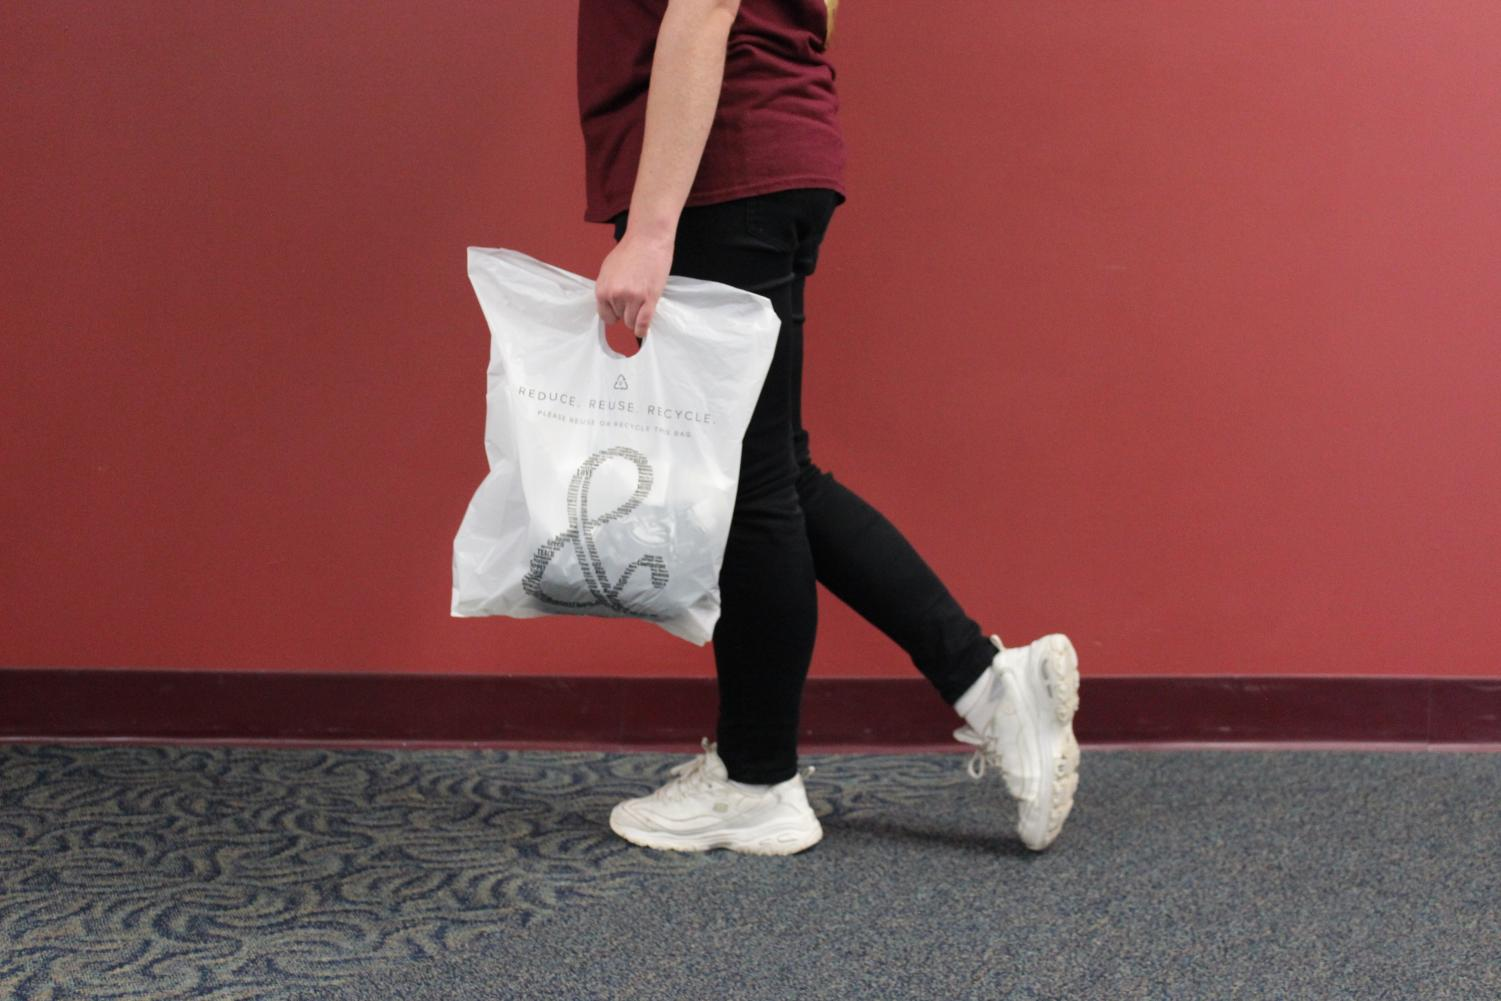 Central students are indecisive on plastic bag use.